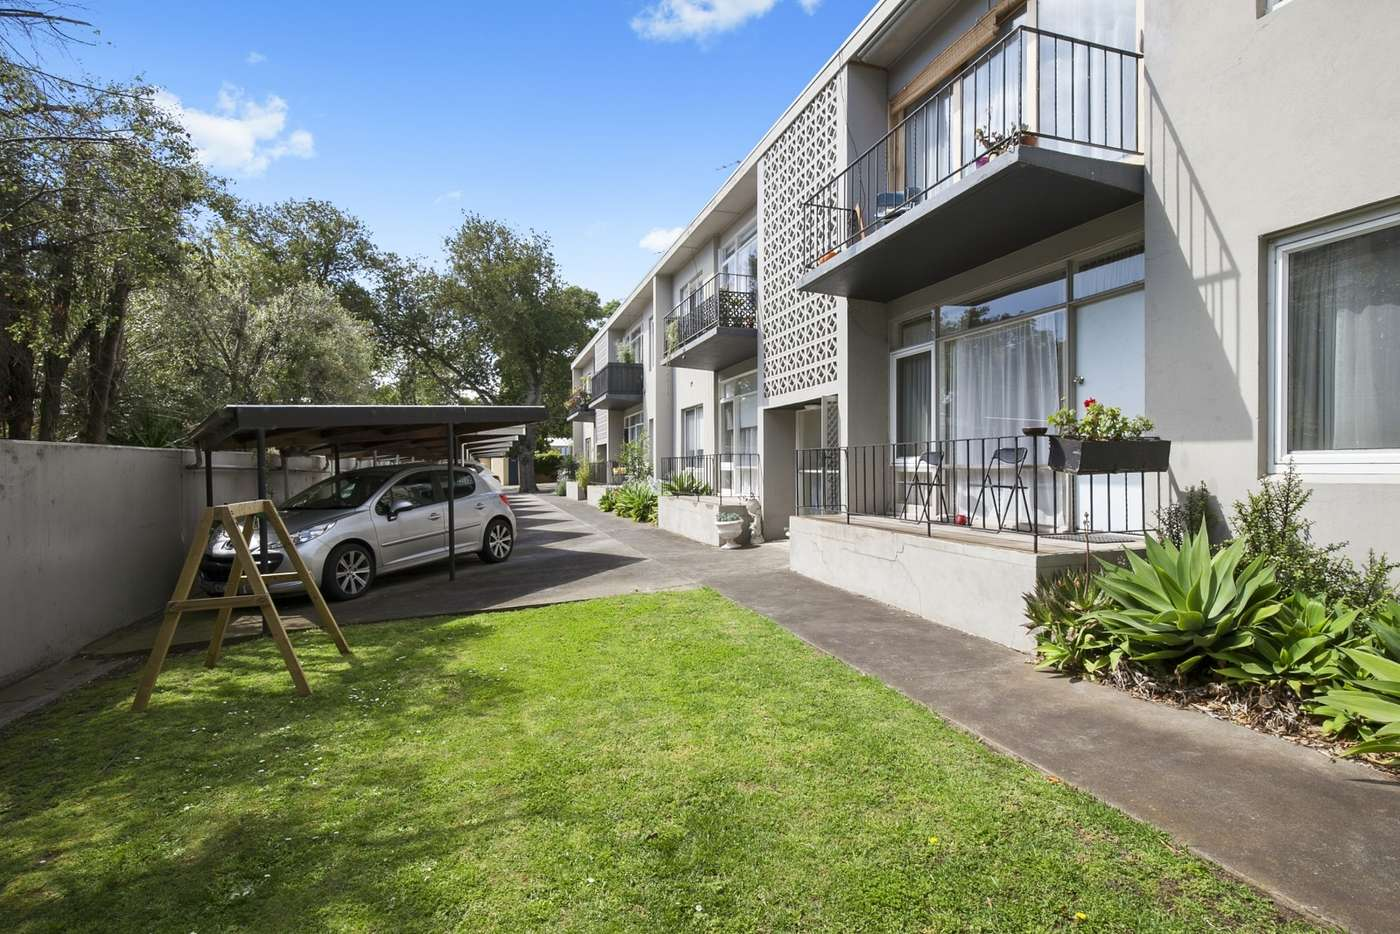 Main view of Homely unit listing, 3/2 Pevensey Street, Geelong VIC 3220